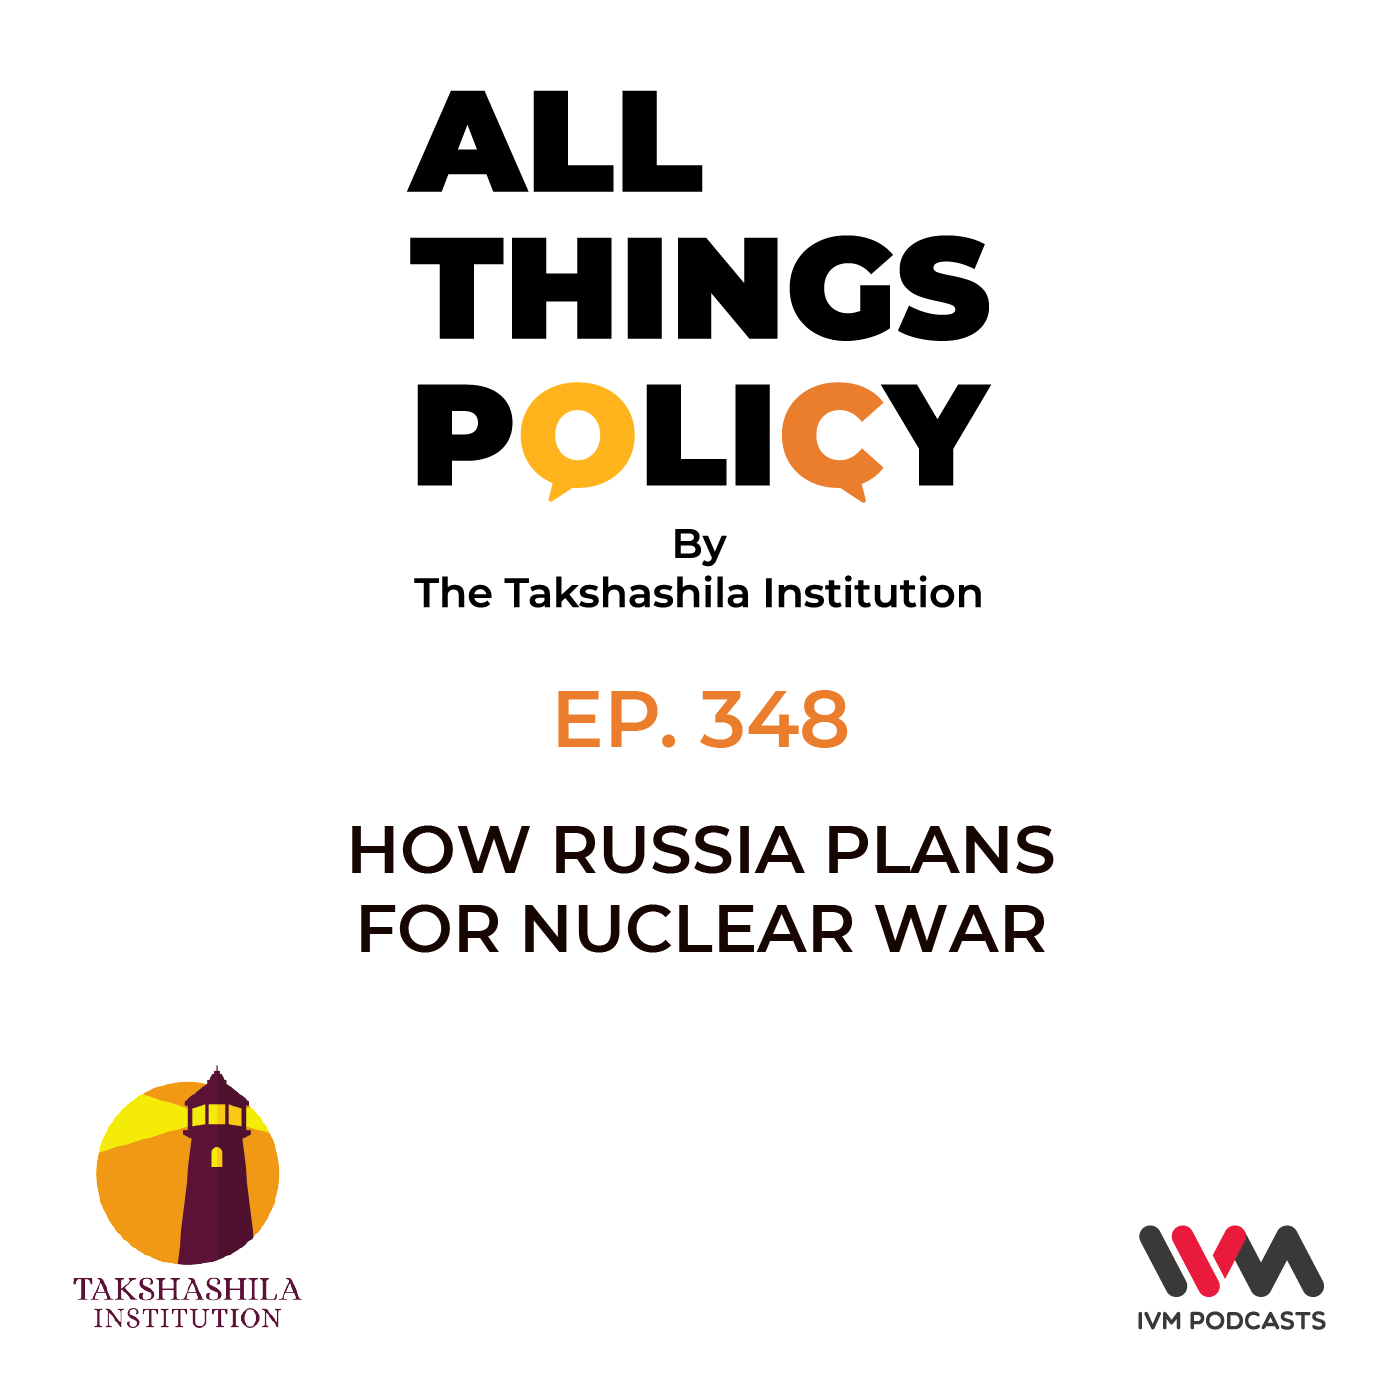 Ep. 348: How Russia Plans for Nuclear War